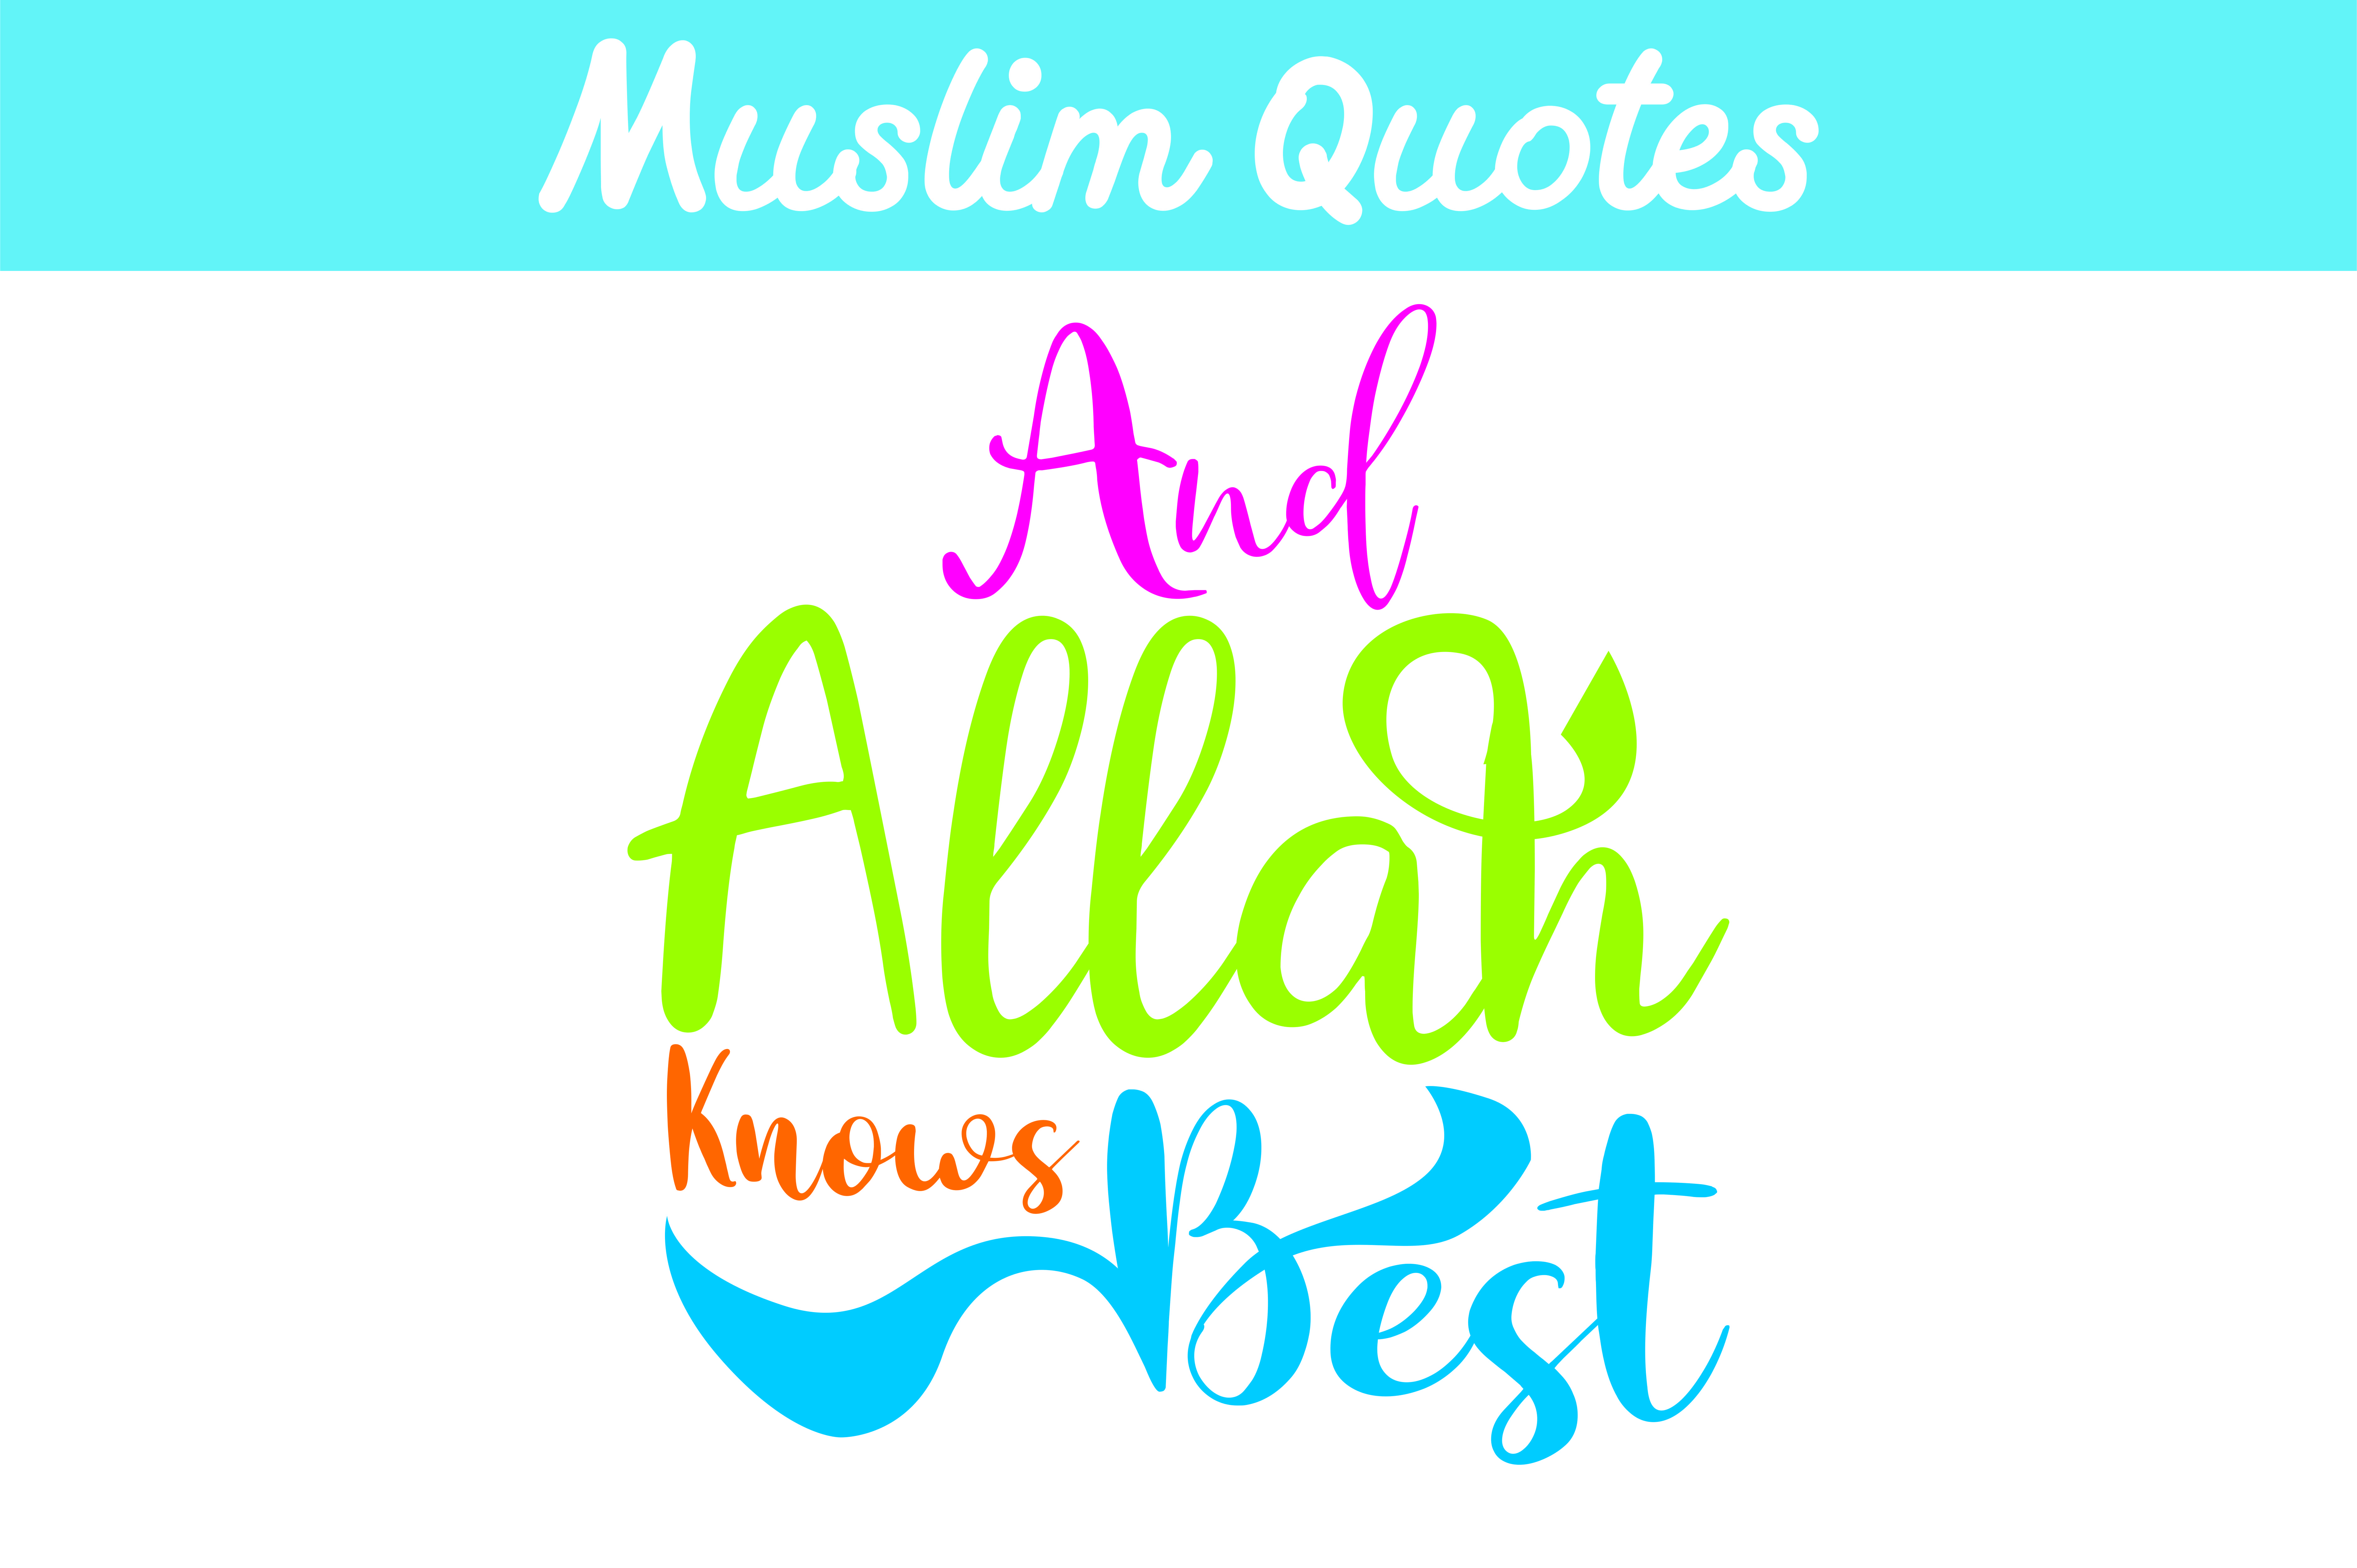 Muslim Quotes And Allah Knows Best Graphic By Arief Sapta Adjie